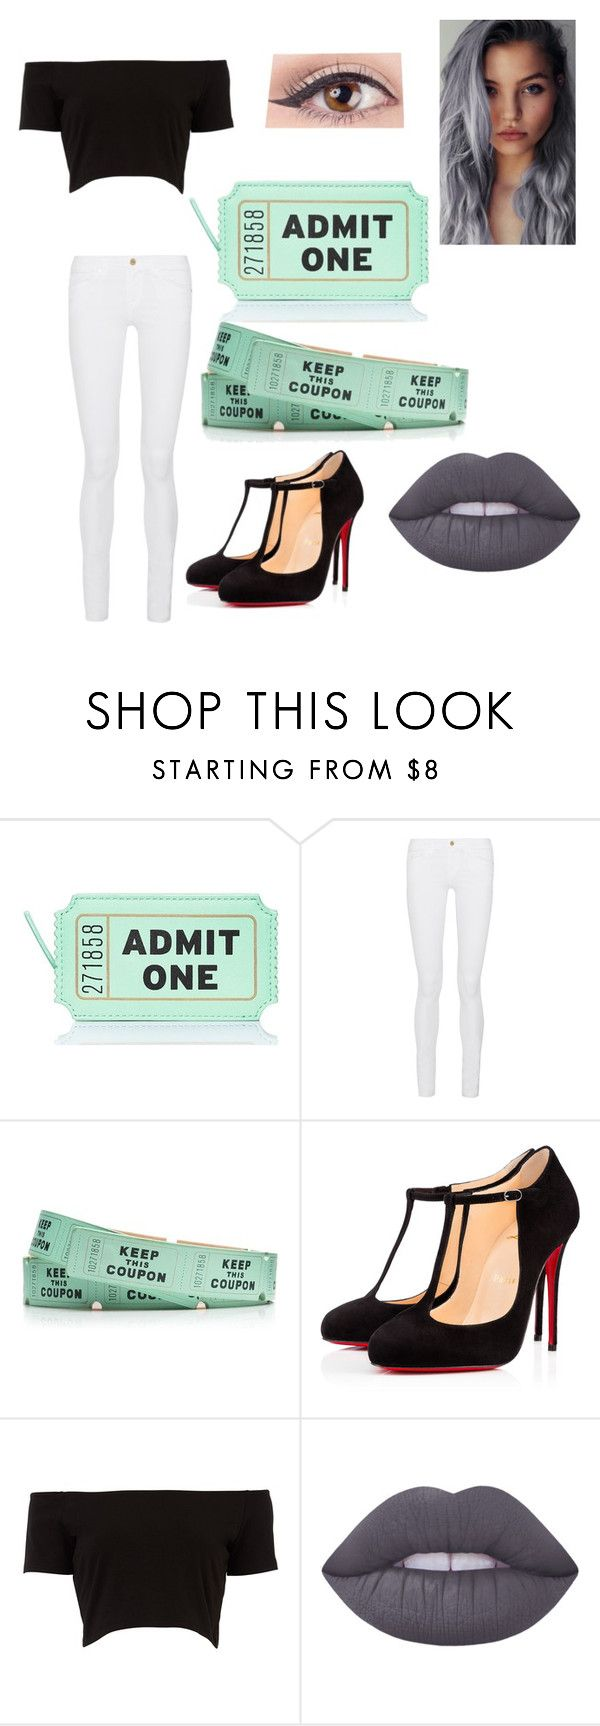 """Admit one"" by alliemcc ❤ liked on Polyvore featuring Kate Spade, Frame Denim, Christian Louboutin and Lime Crime"